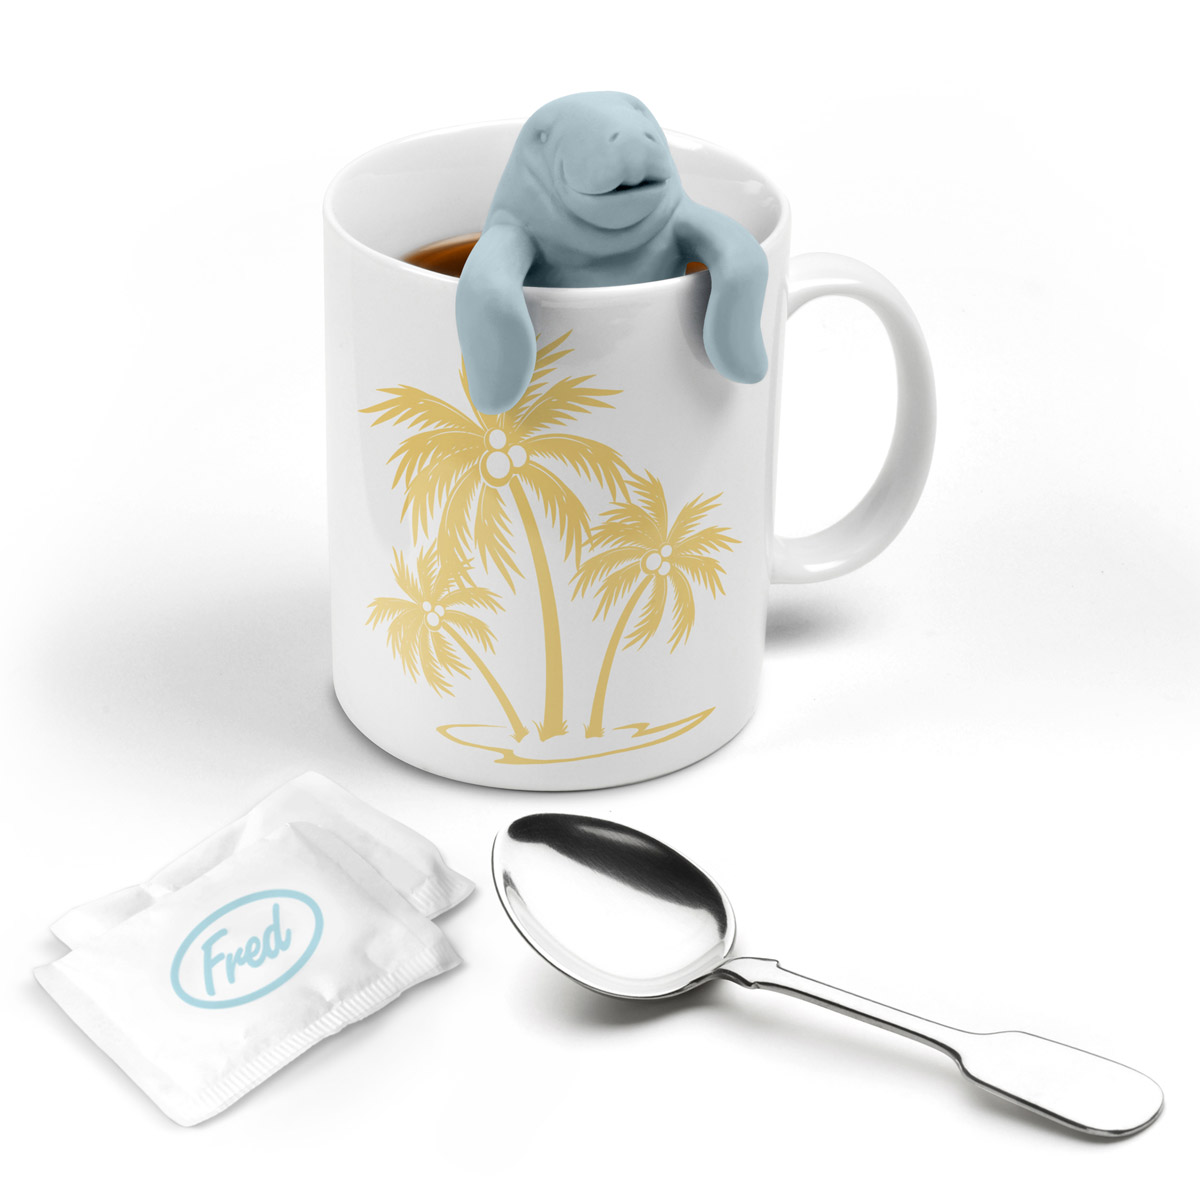 Manatea Tea Infuser The Green Head